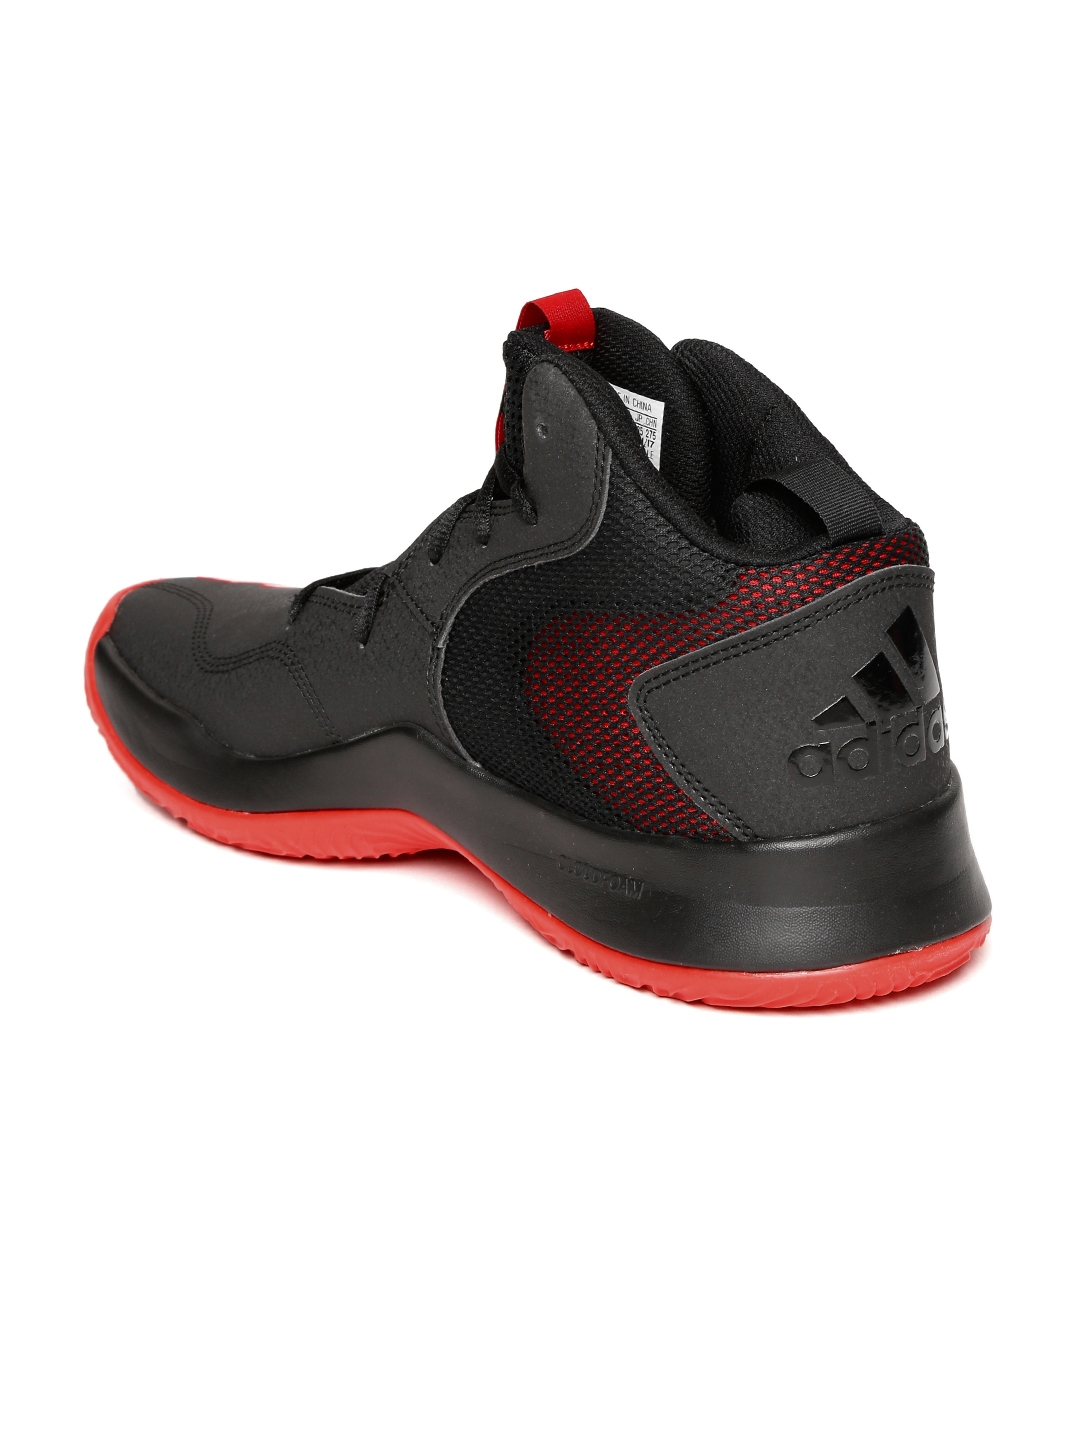 552b349004a771 ADIDAS Men Black   Red Synthetic Mid-Top CRAZY TEAM II Basketball Shoes